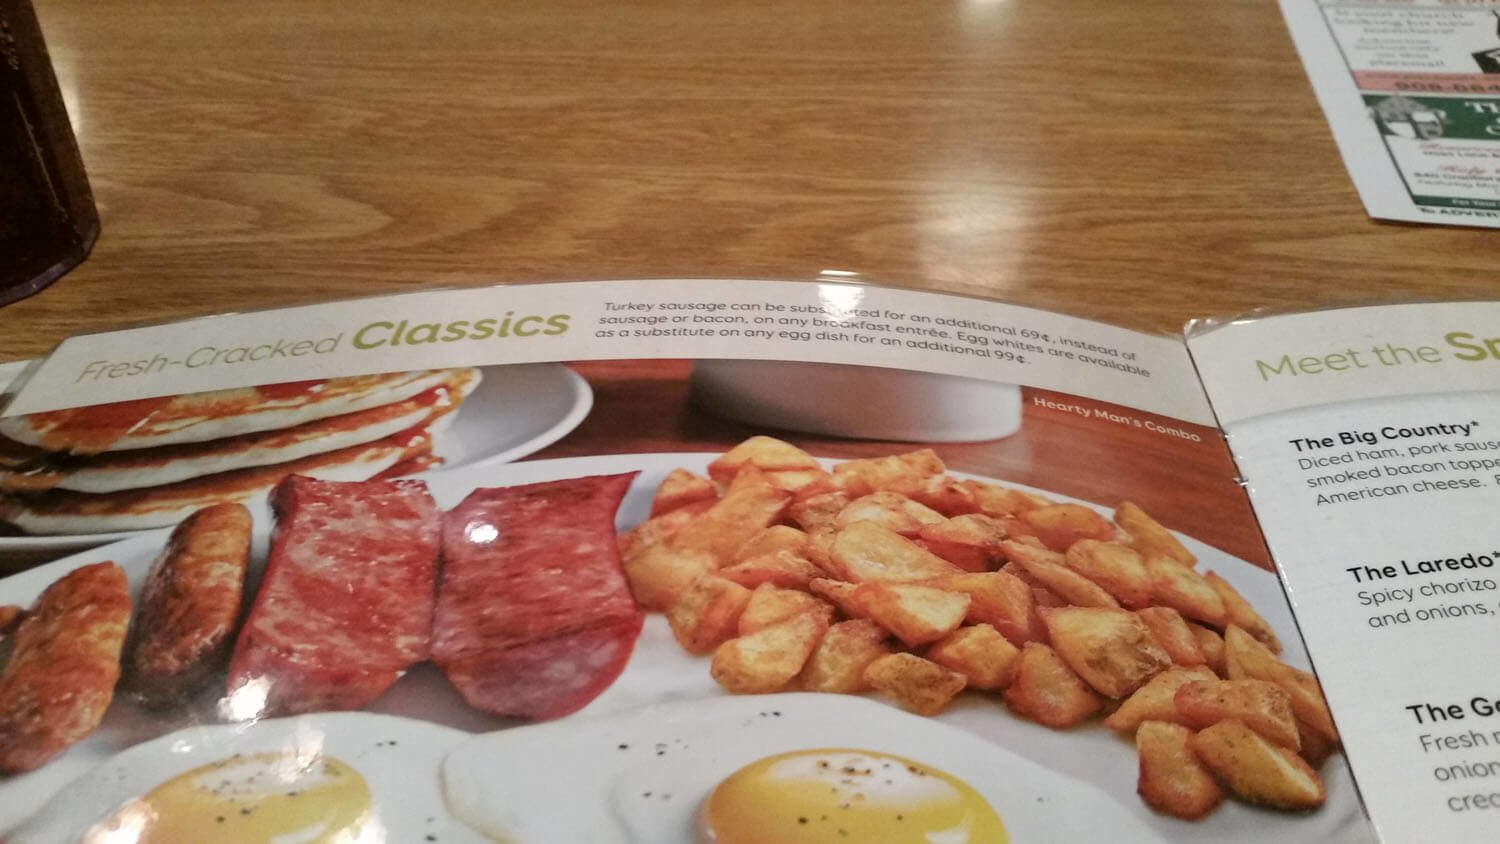 Perkins Menu – 13